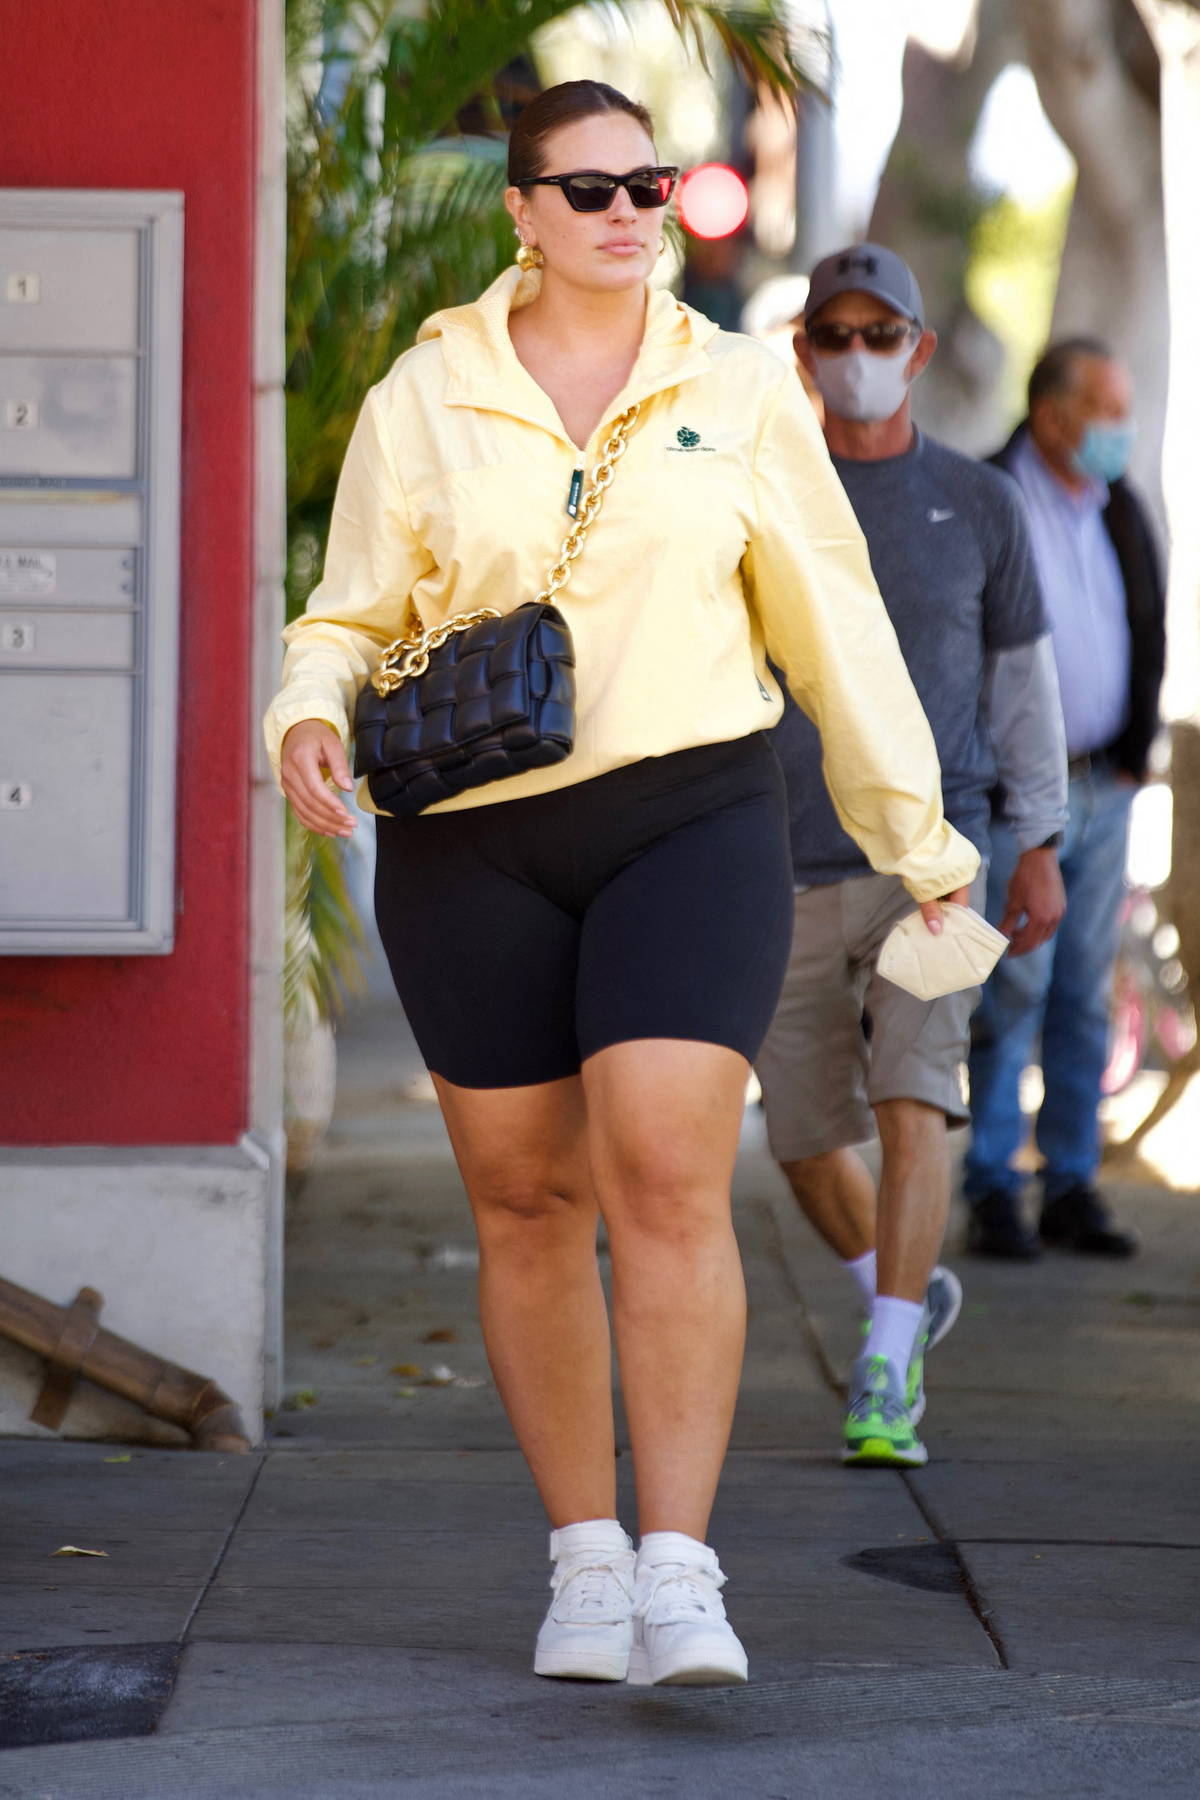 Ashley Graham flaunts her curves in legging shorts and yellow windbreaker while out in Santa Monica, California